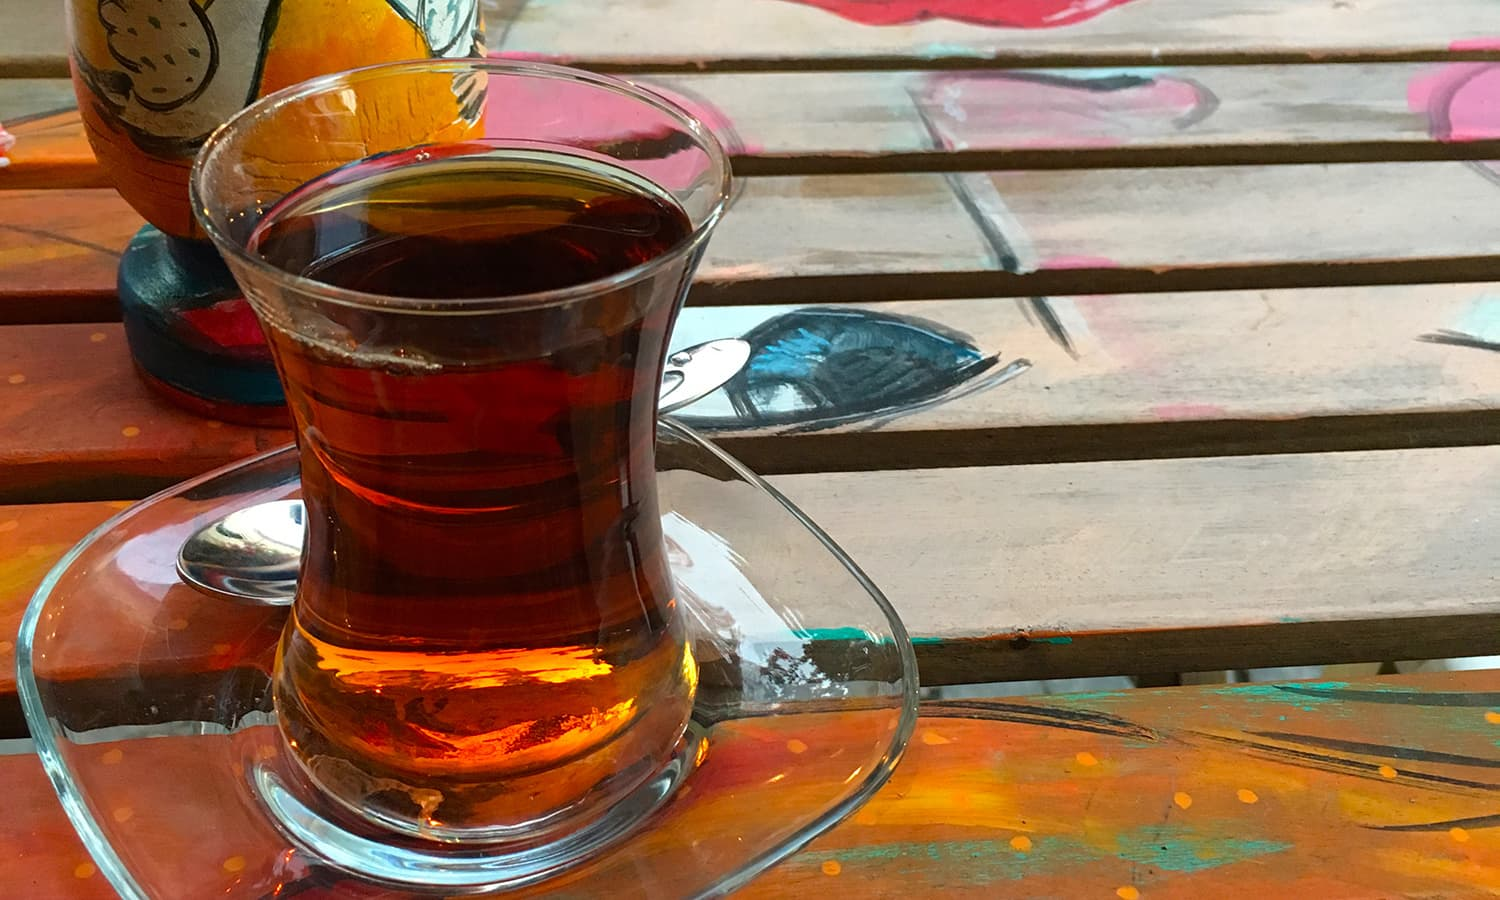 Having tea at the Kirli Çıkı Sanat Galerisi.